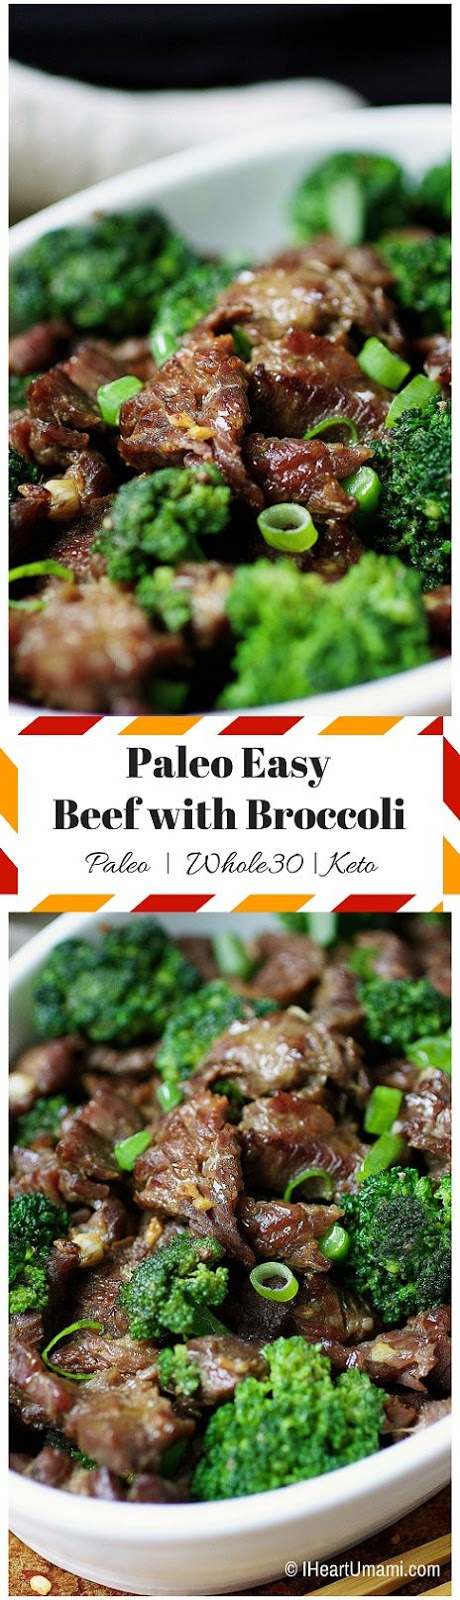 ★★★★☆ 7561 ratings | Paleo Beef With Broccoli #HEALTHYFOOD #EASYRECIPES #DINNER #LAUCH #DELICIOUS #EASY #HOLIDAYS #RECIPE #Paleo #Beef #Broccoli